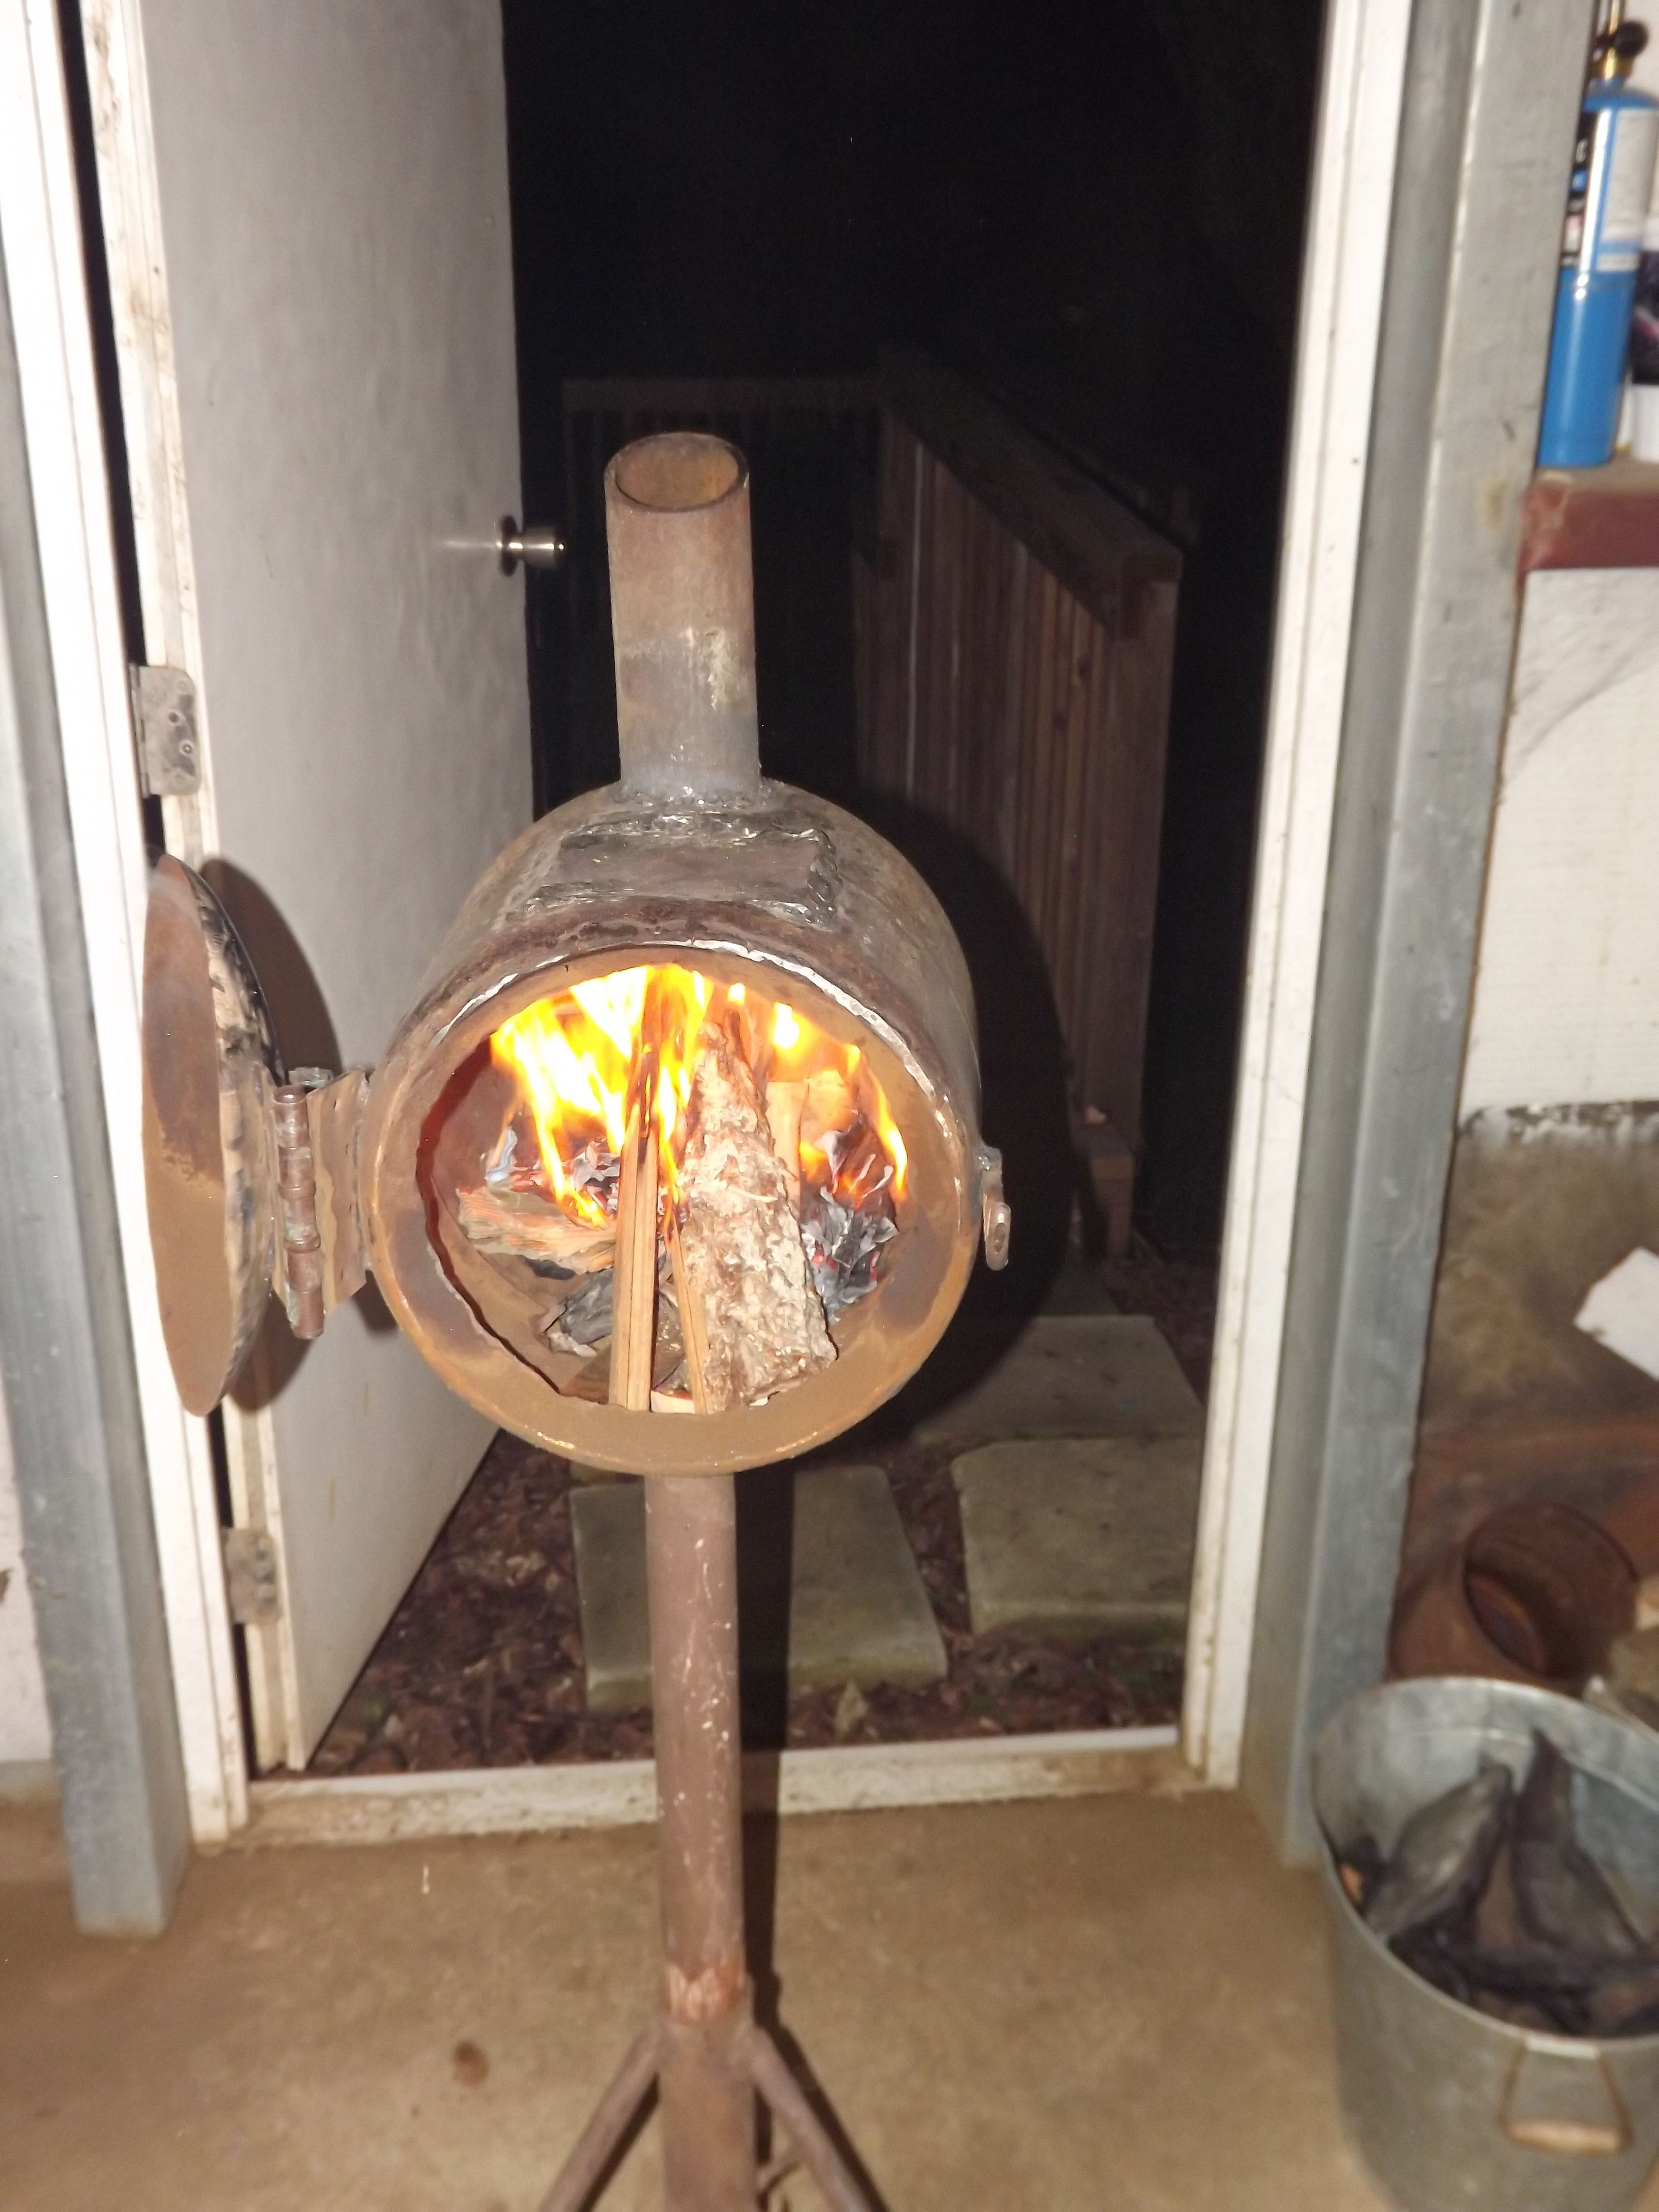 Simple Homemade Wood Stove From Old Propane Tank Campingstovehomemade Wood Stove Outdoor Wood